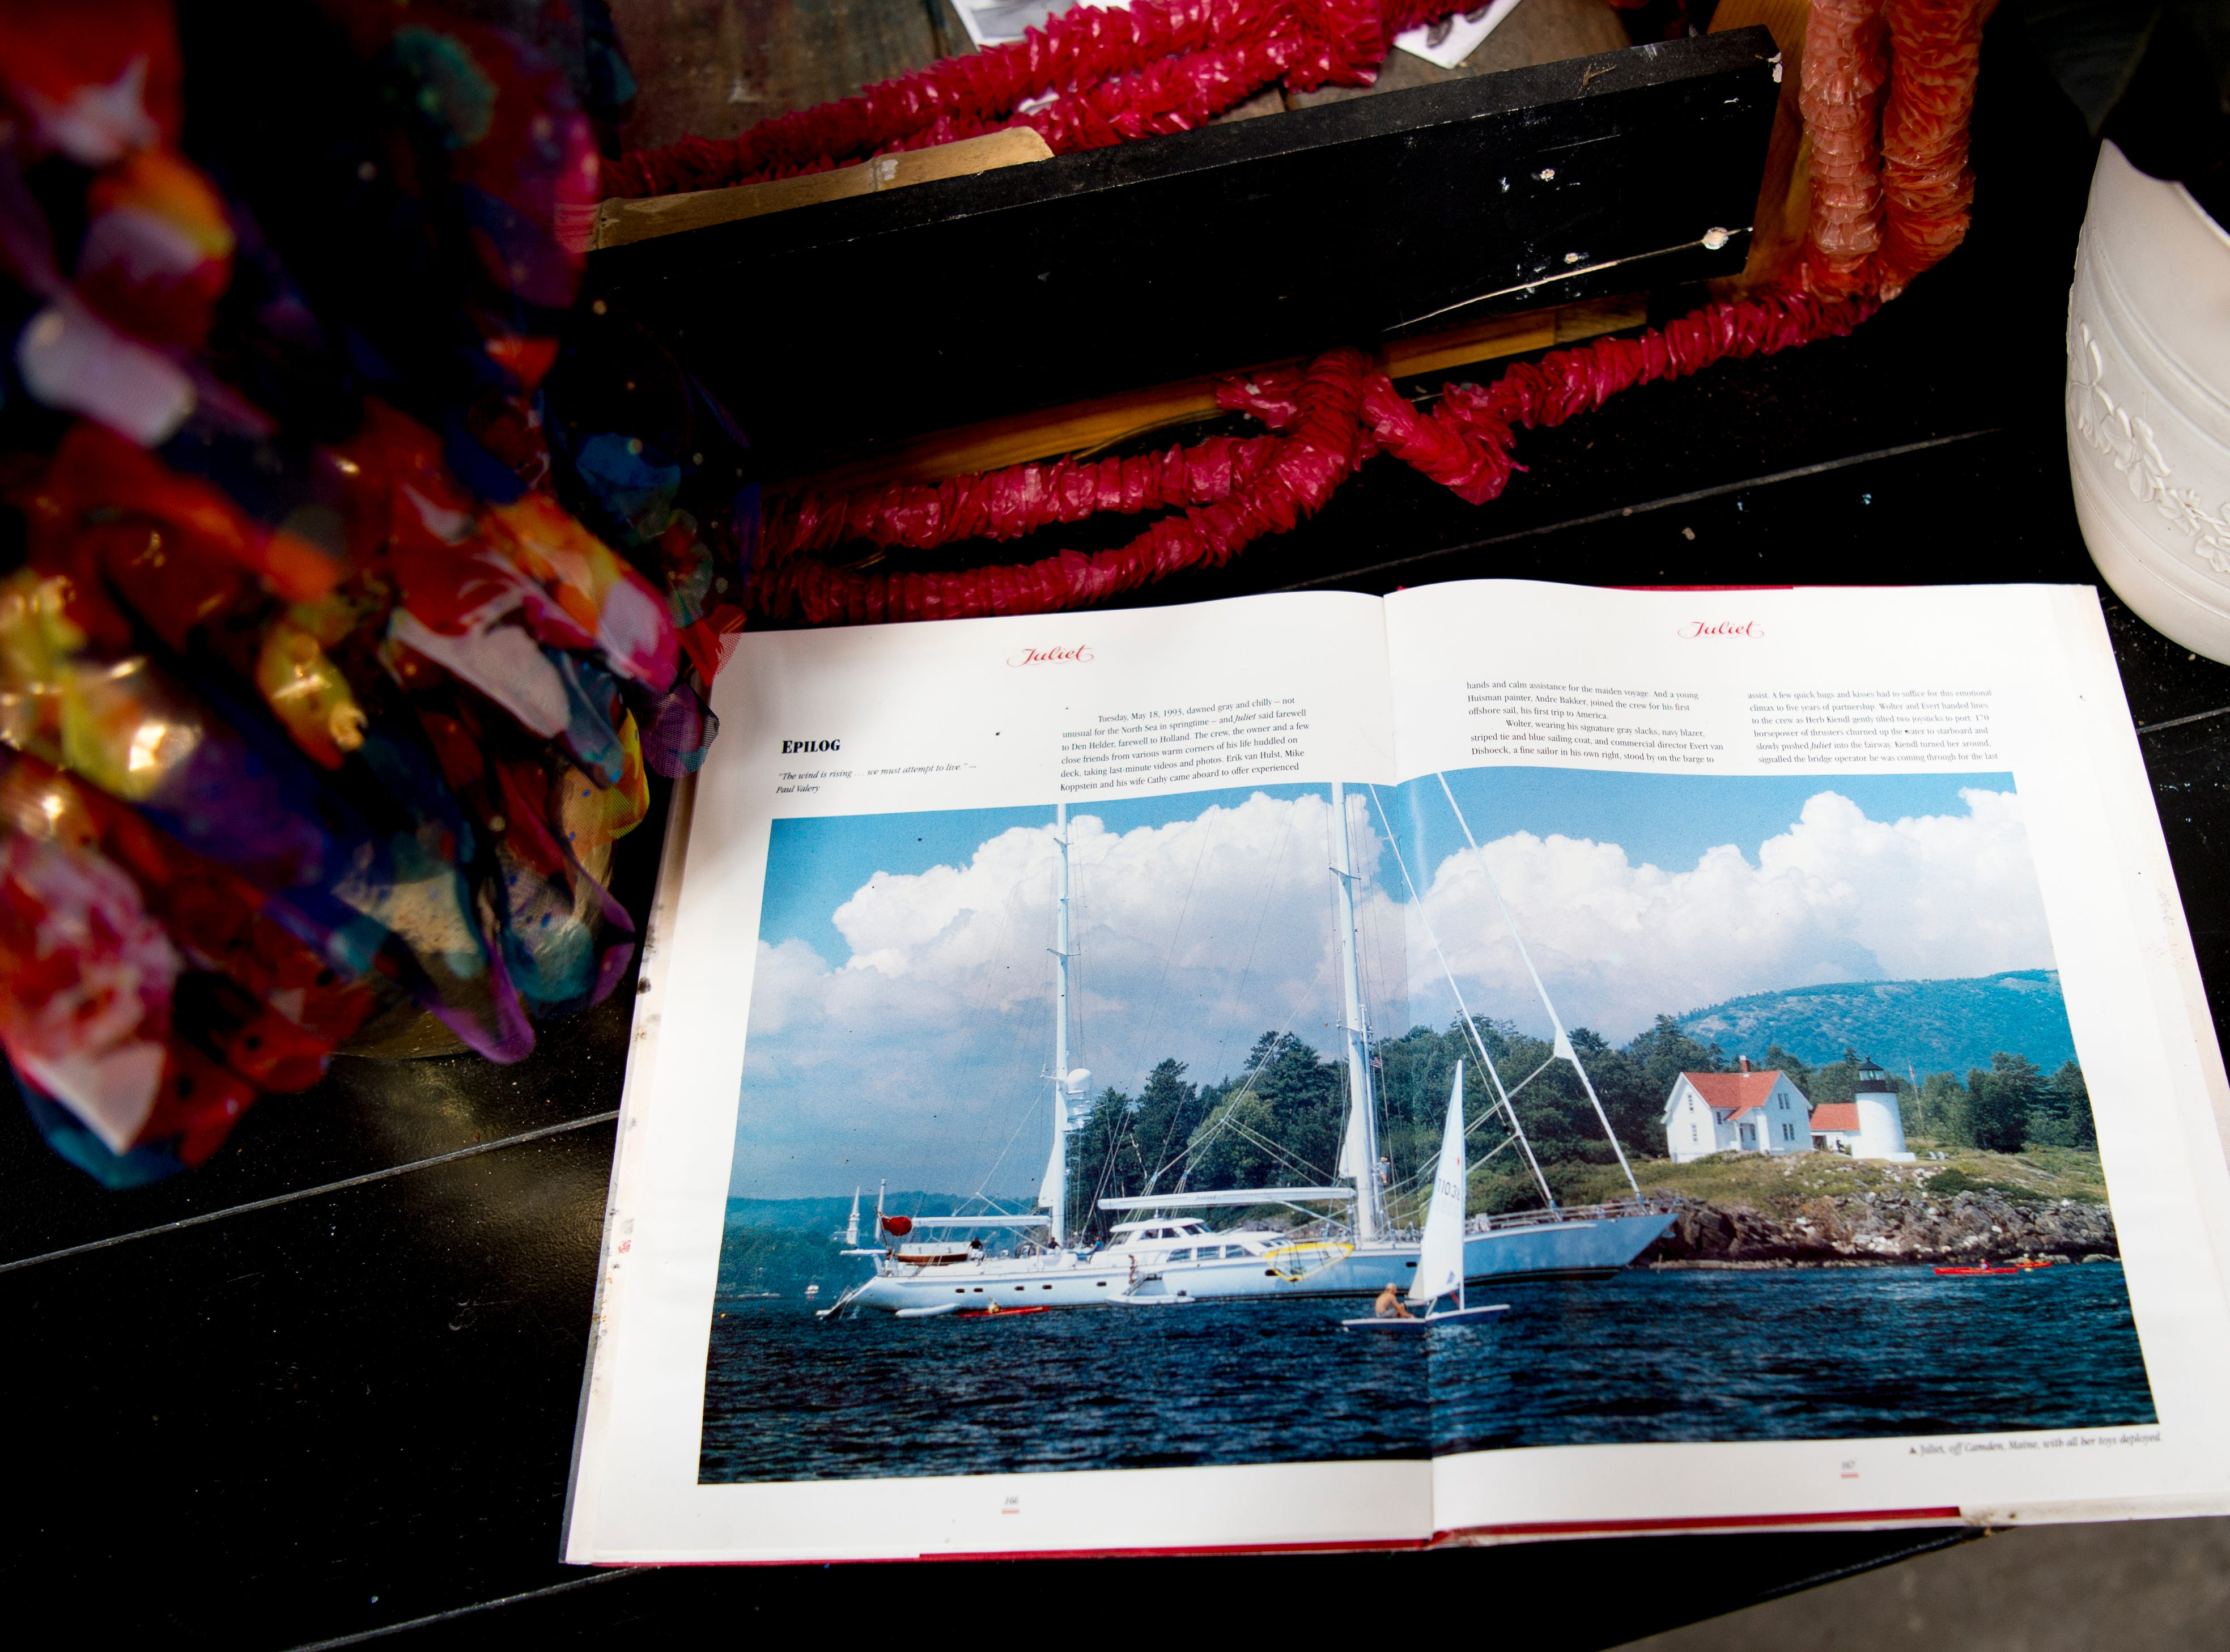 A sailing book is part of the deception at Bar Marley in Knoxville, Tennessee on Thursday, February 14, 2019. The Caribbean-themed Bar Marley is facing possible acquisition and condemnation by KCDC due to code violations.